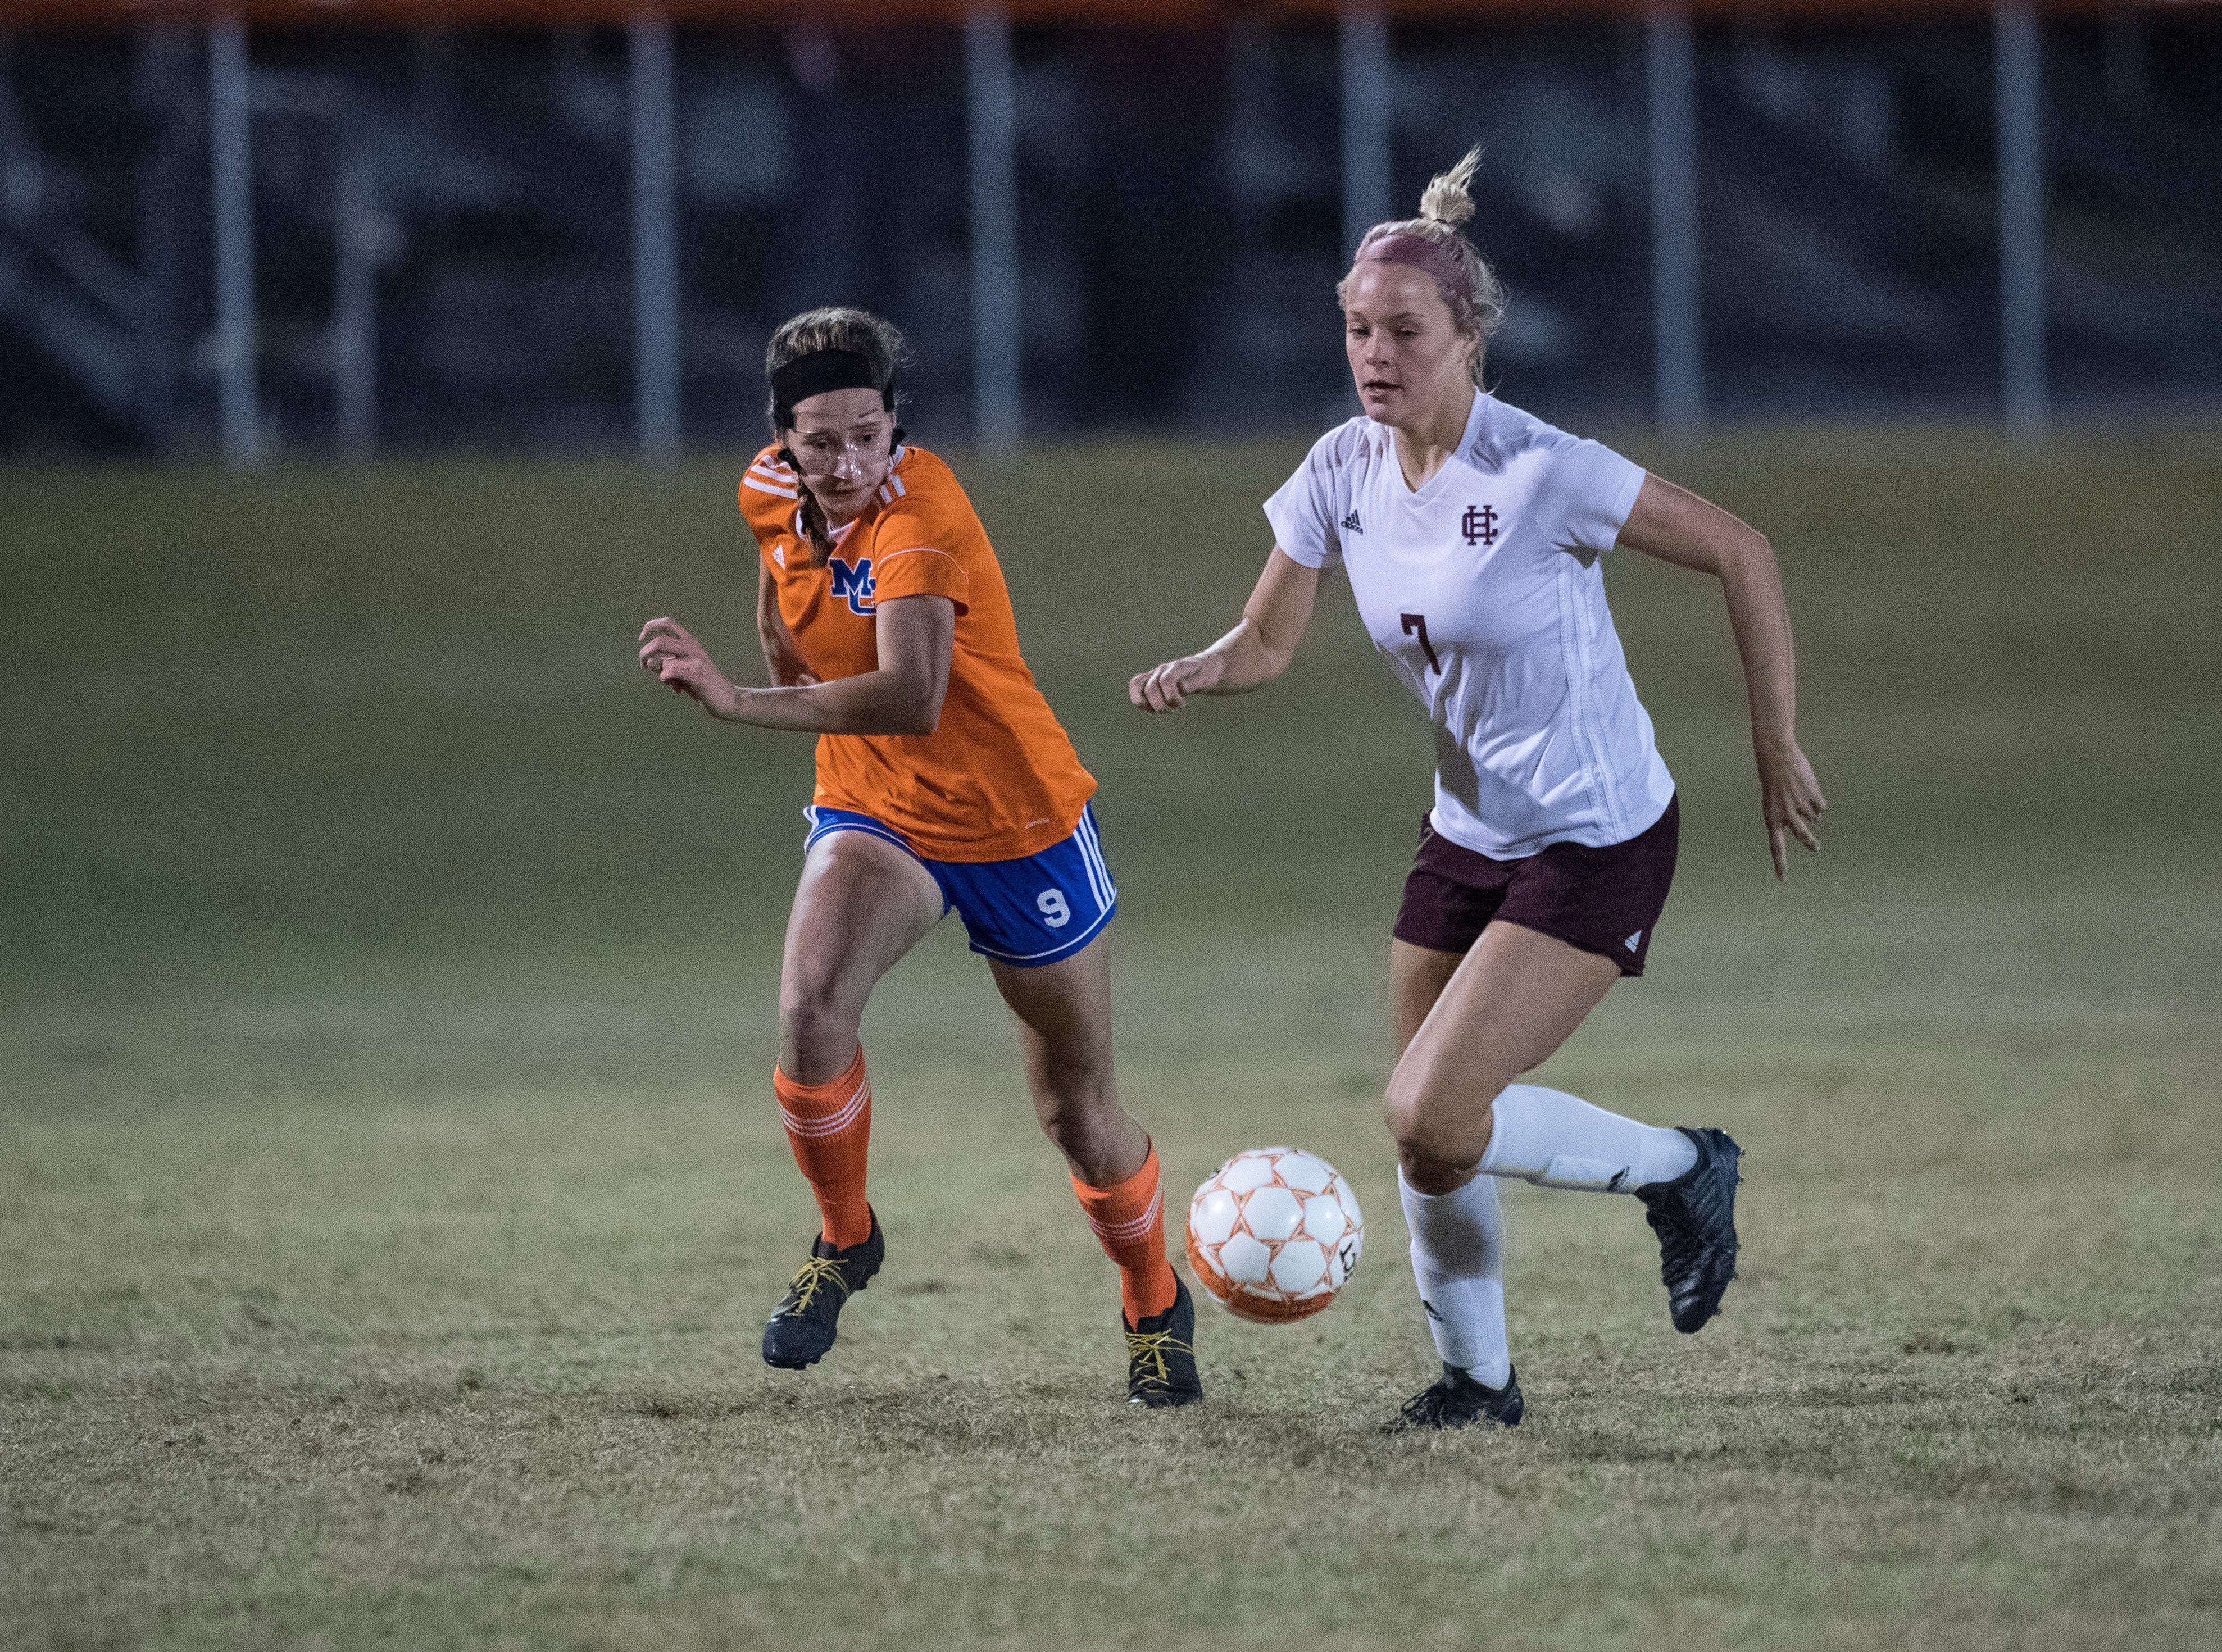 Marshall County's Hanna Holsapple (7) and Henderson's Carlee Crafton (7) battle during the first round of the KHSAA state tournament at Marshall County High School Monday, Oct. 23, 2018.